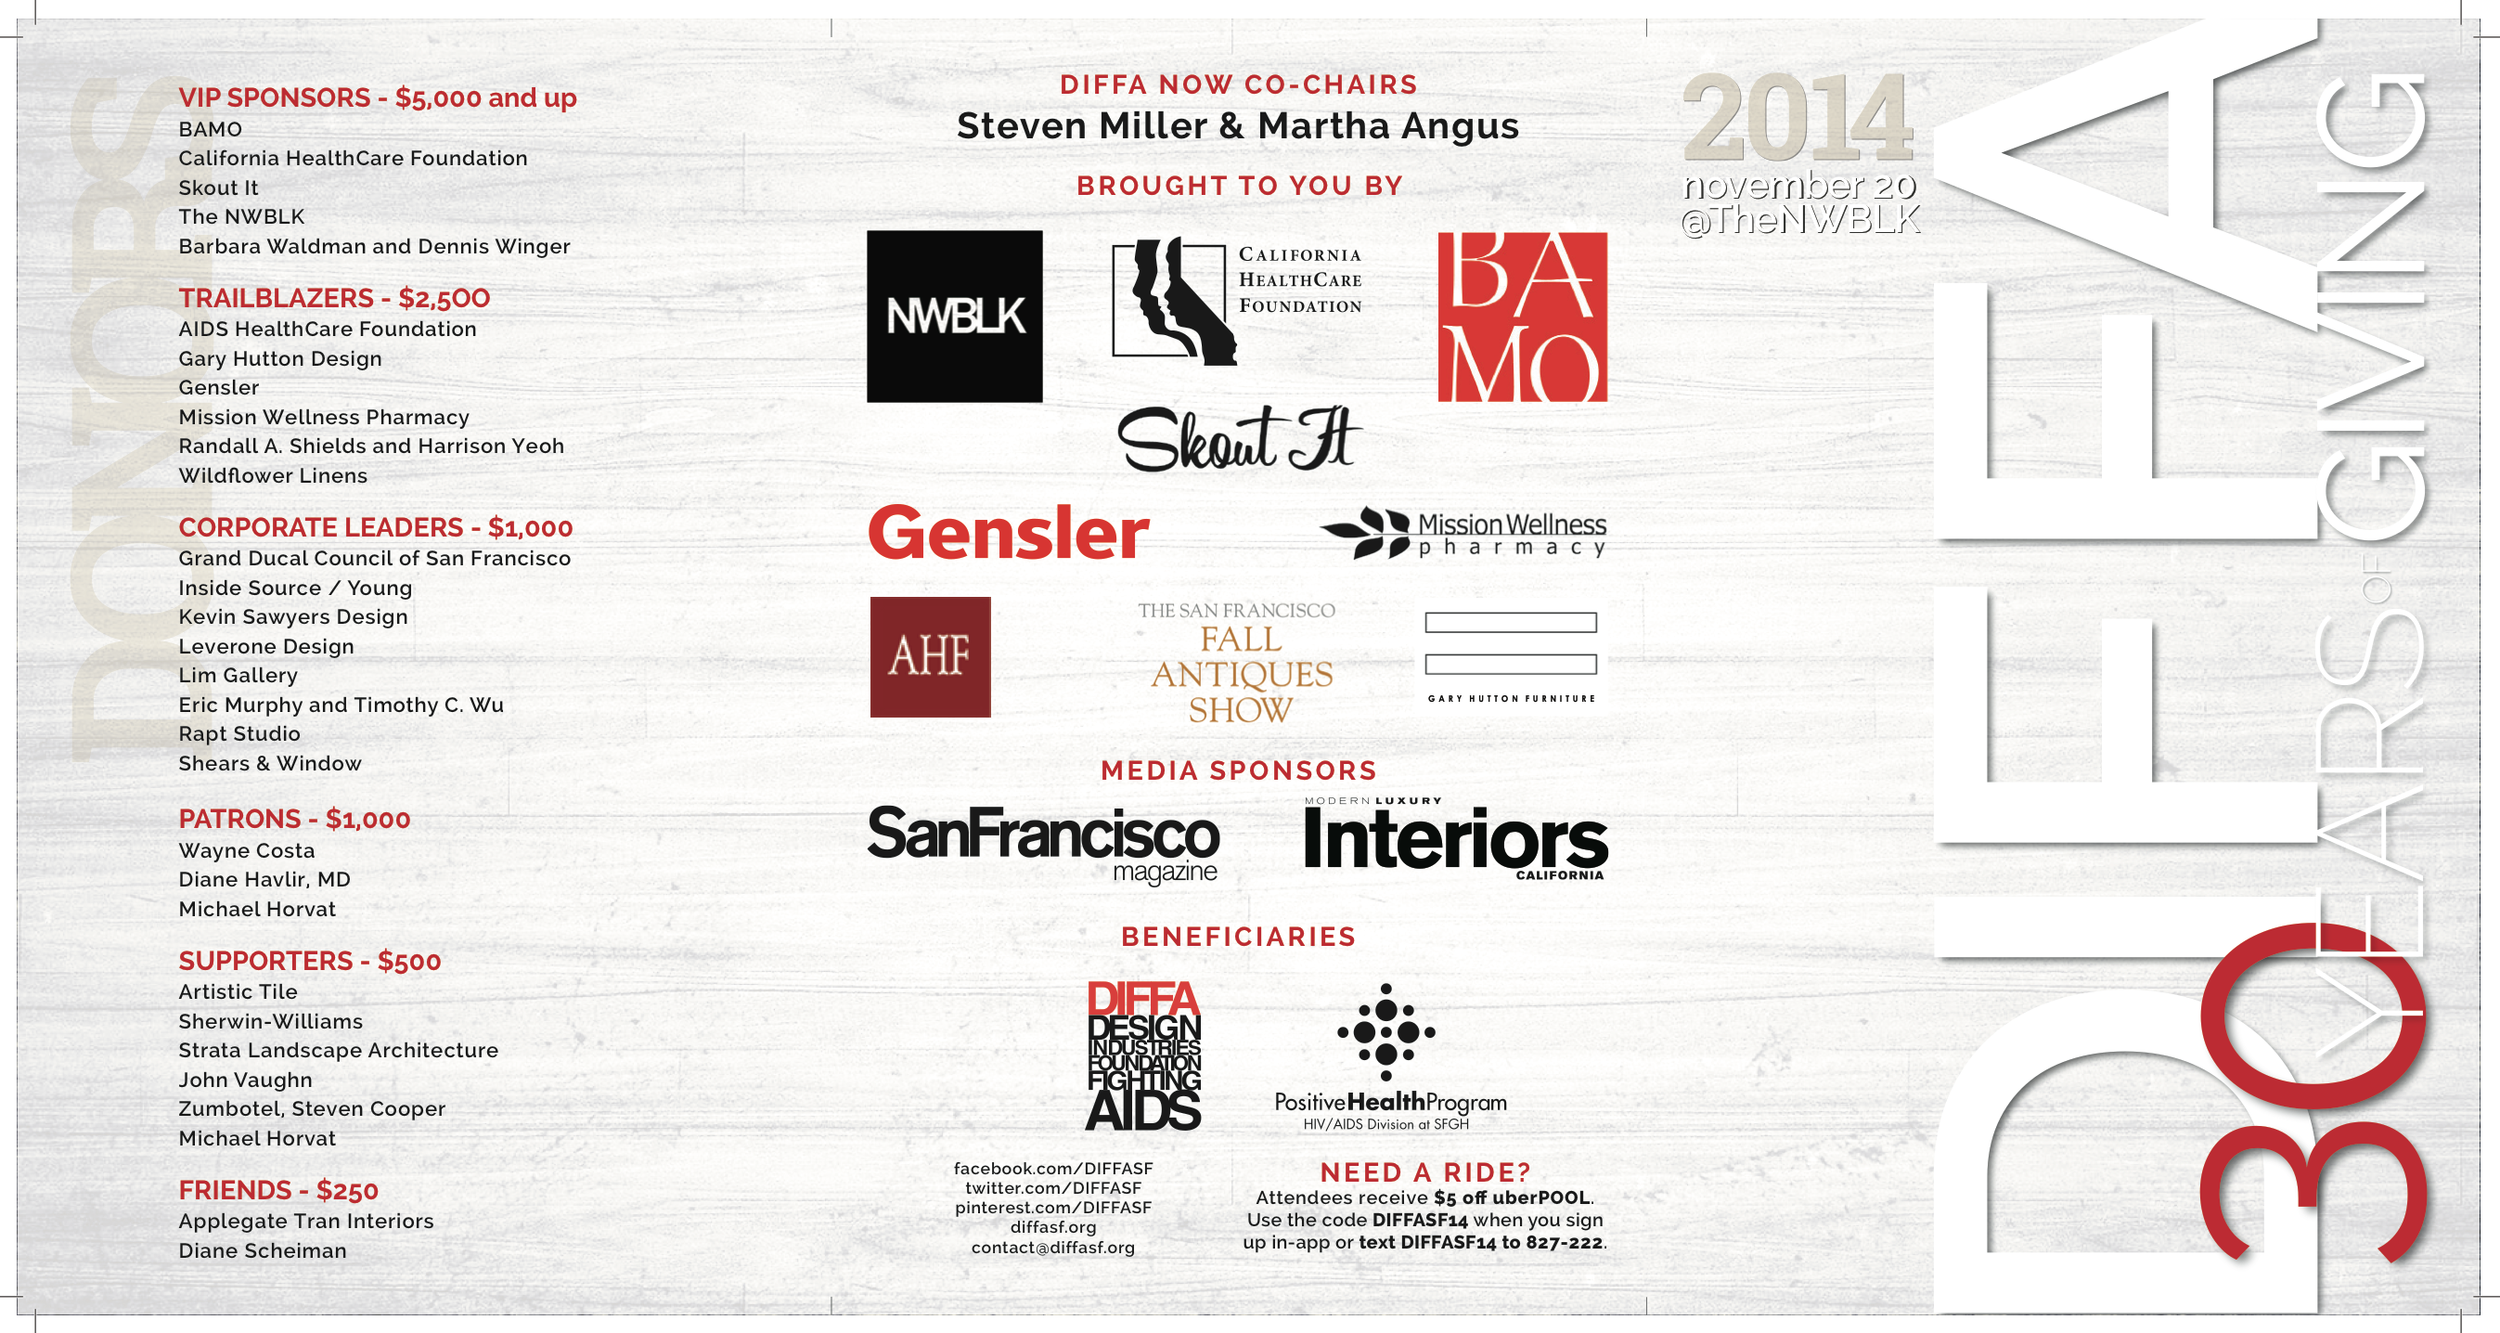 DIFFA 30 Year Anniversary Event Program, 2014 - Outside/Front & Back Cover